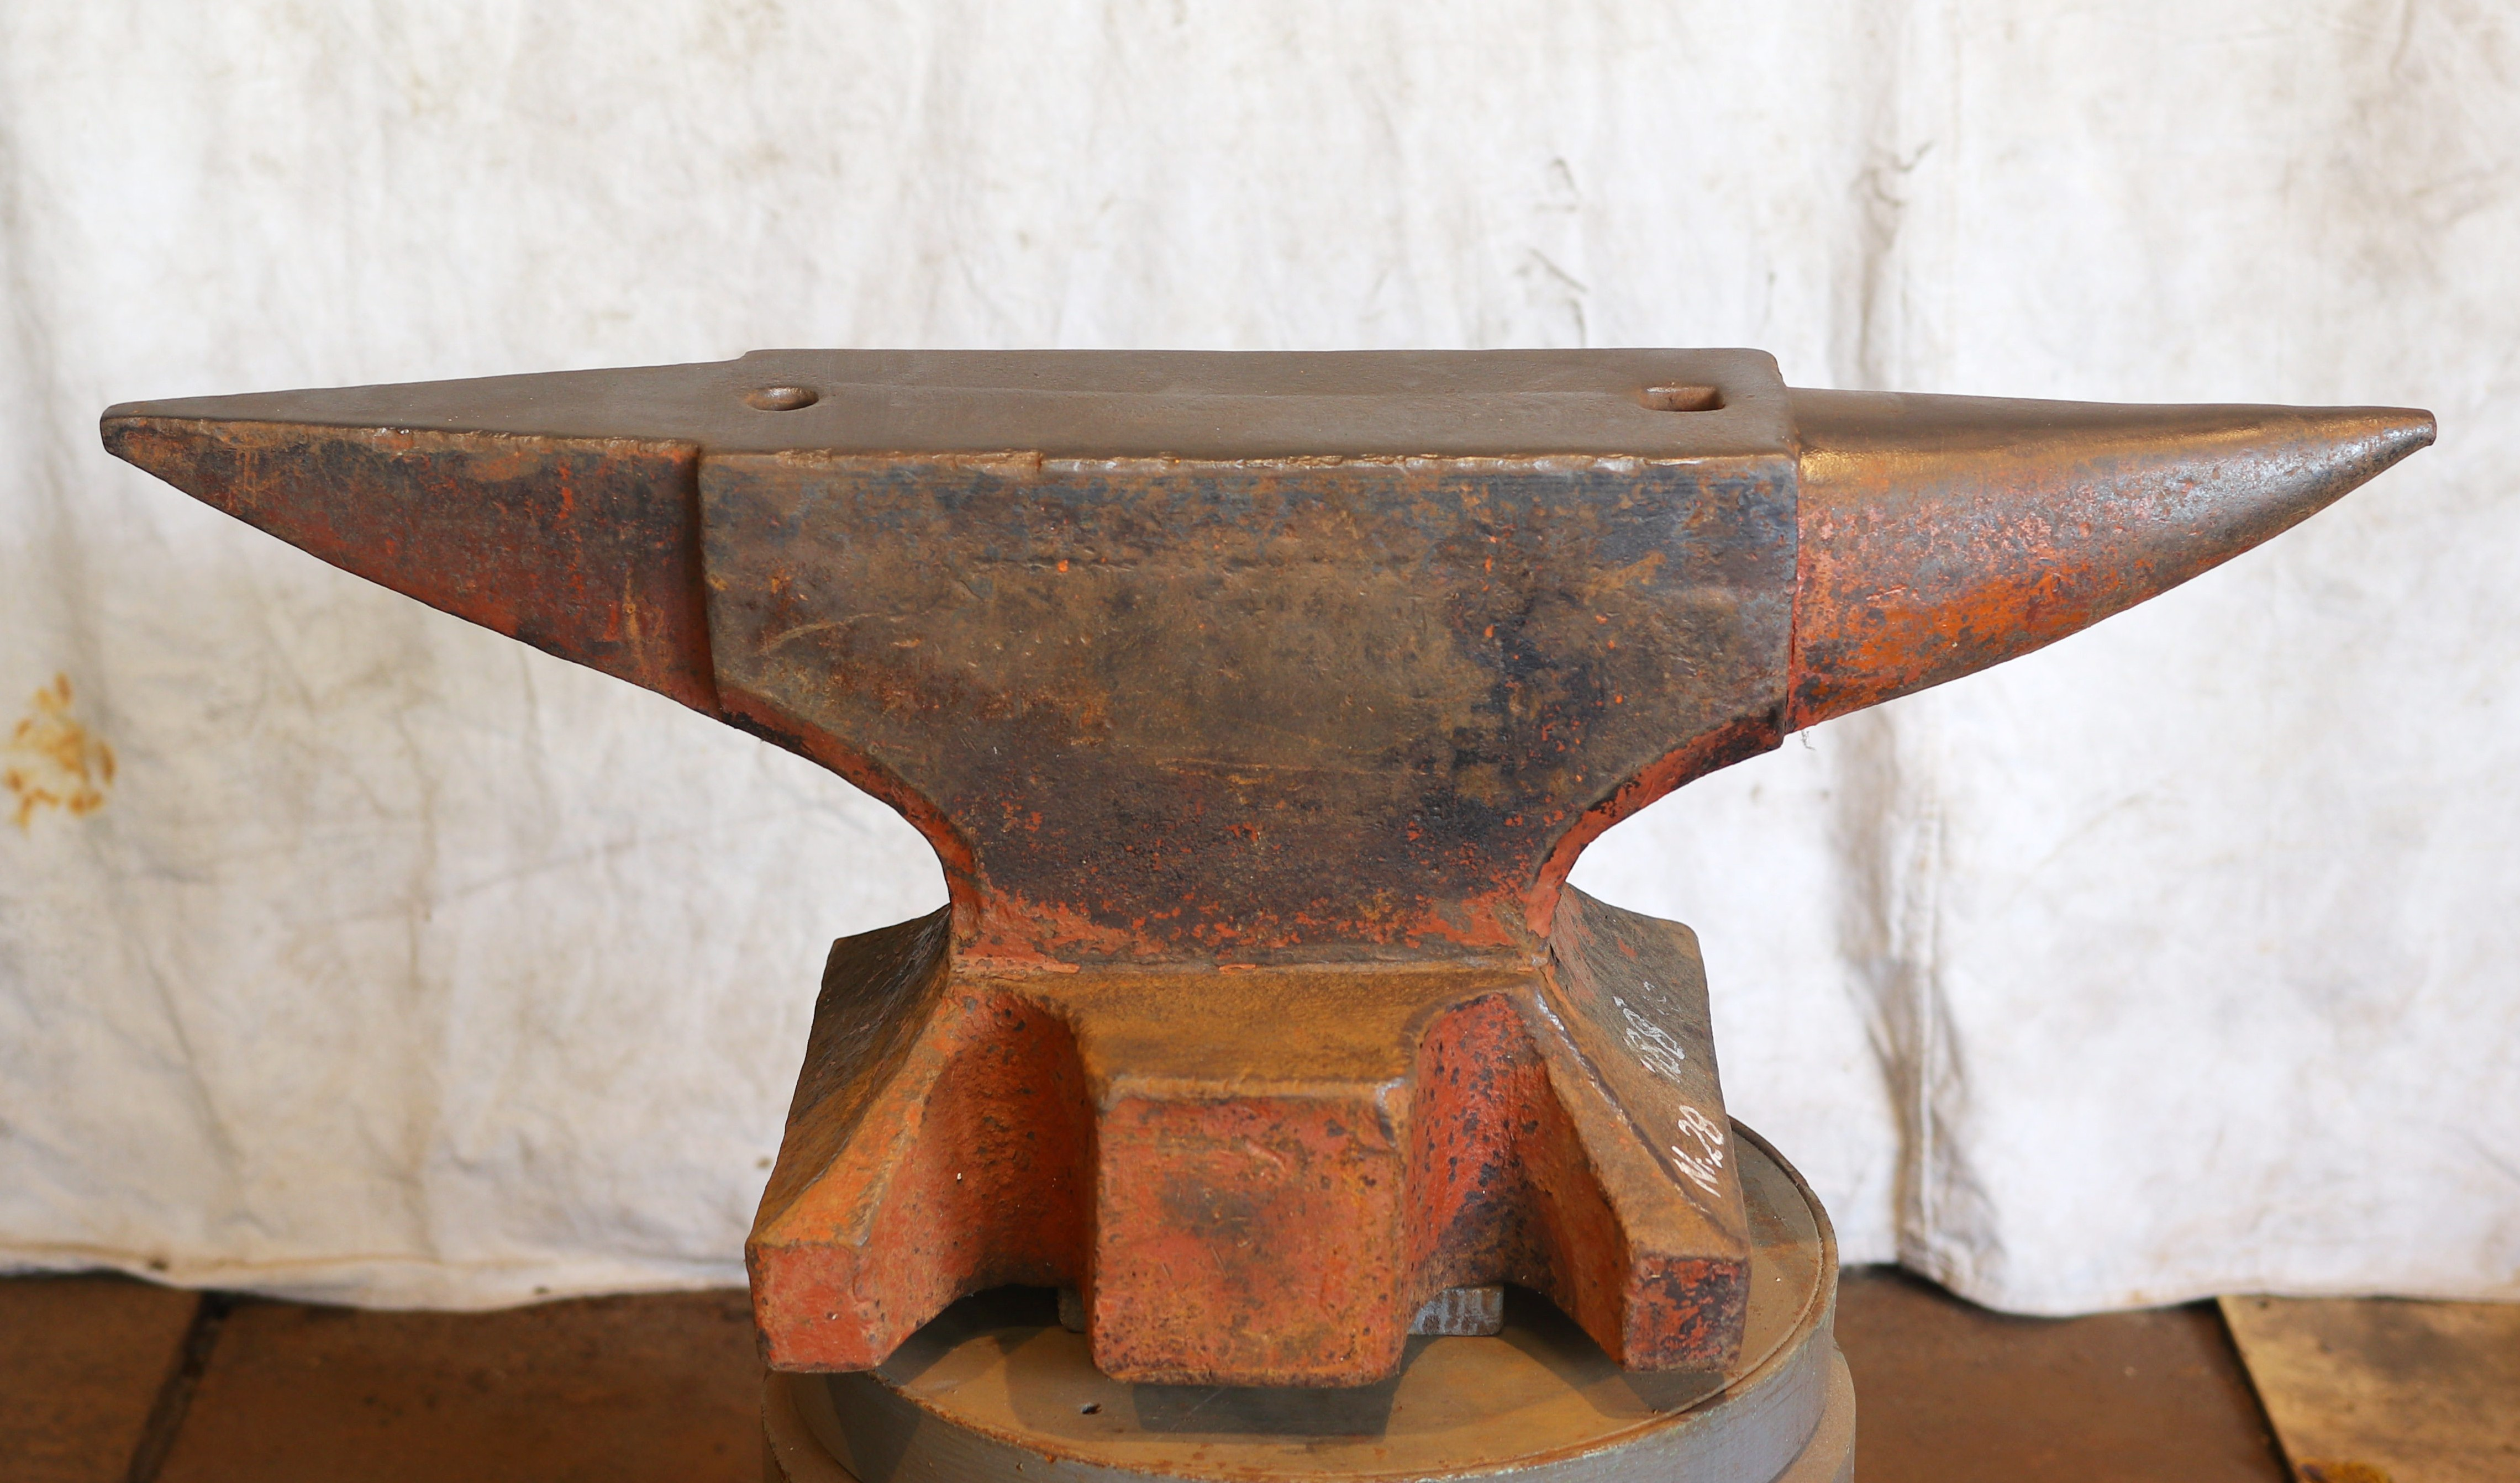 413 lb German anvil for sale- north German style double horned blacksmith anvil